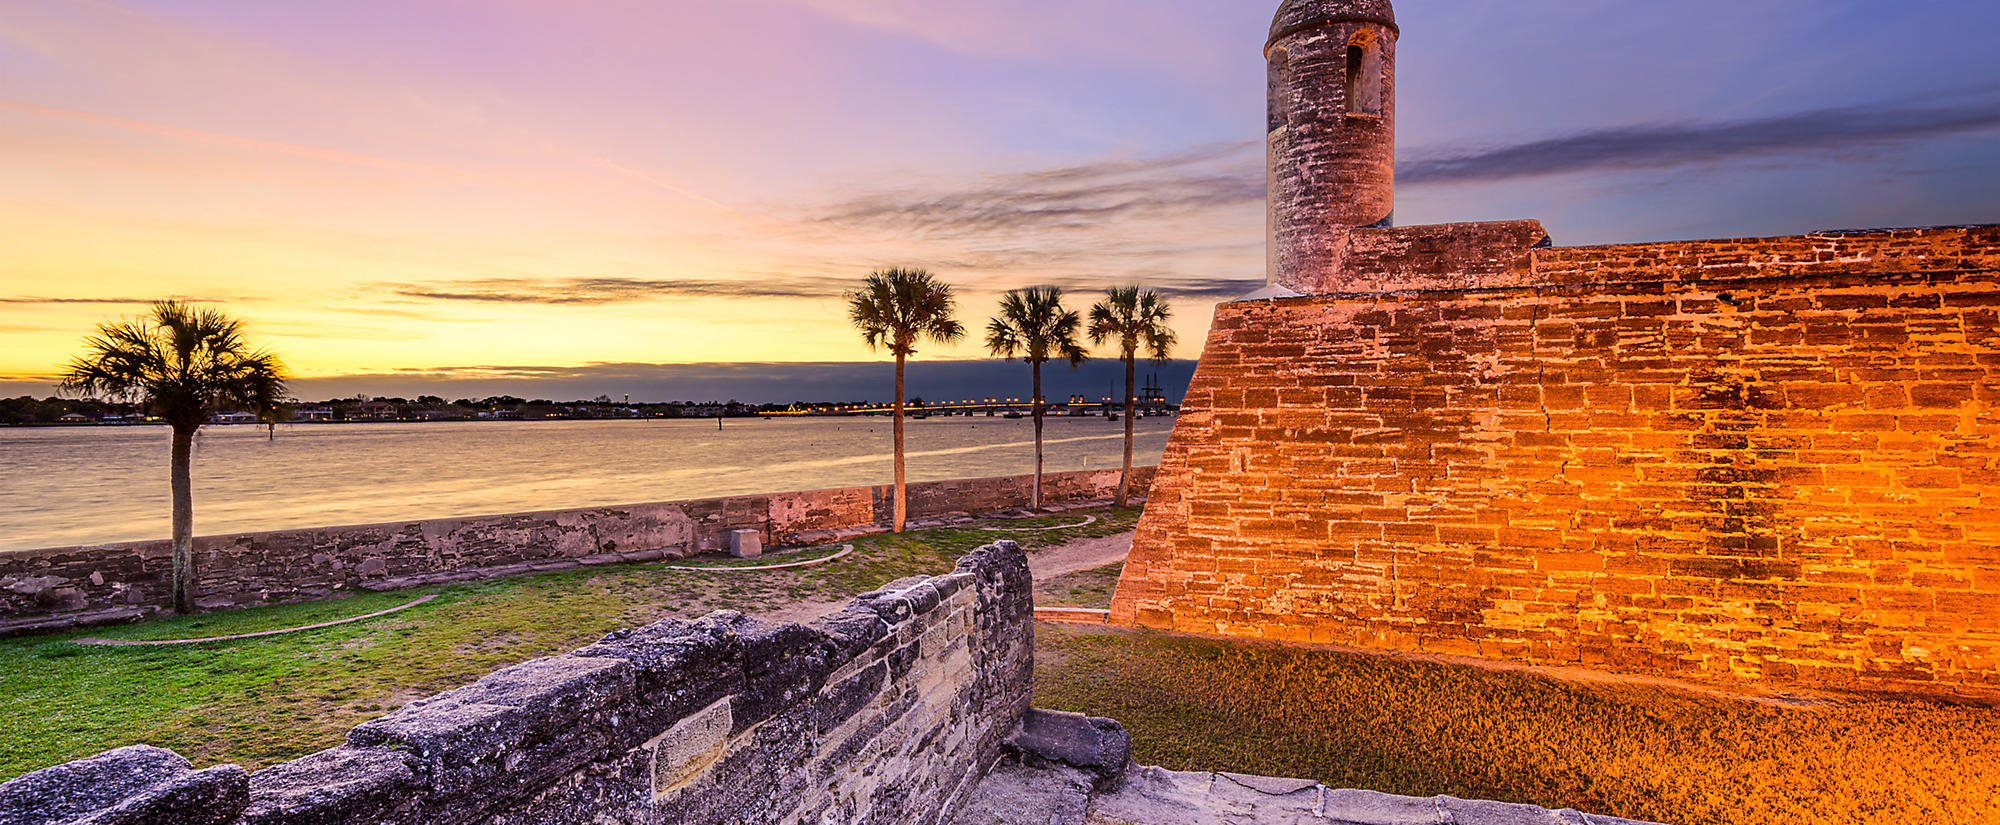 Castillo de San Marcos 'The Fort' at dusk